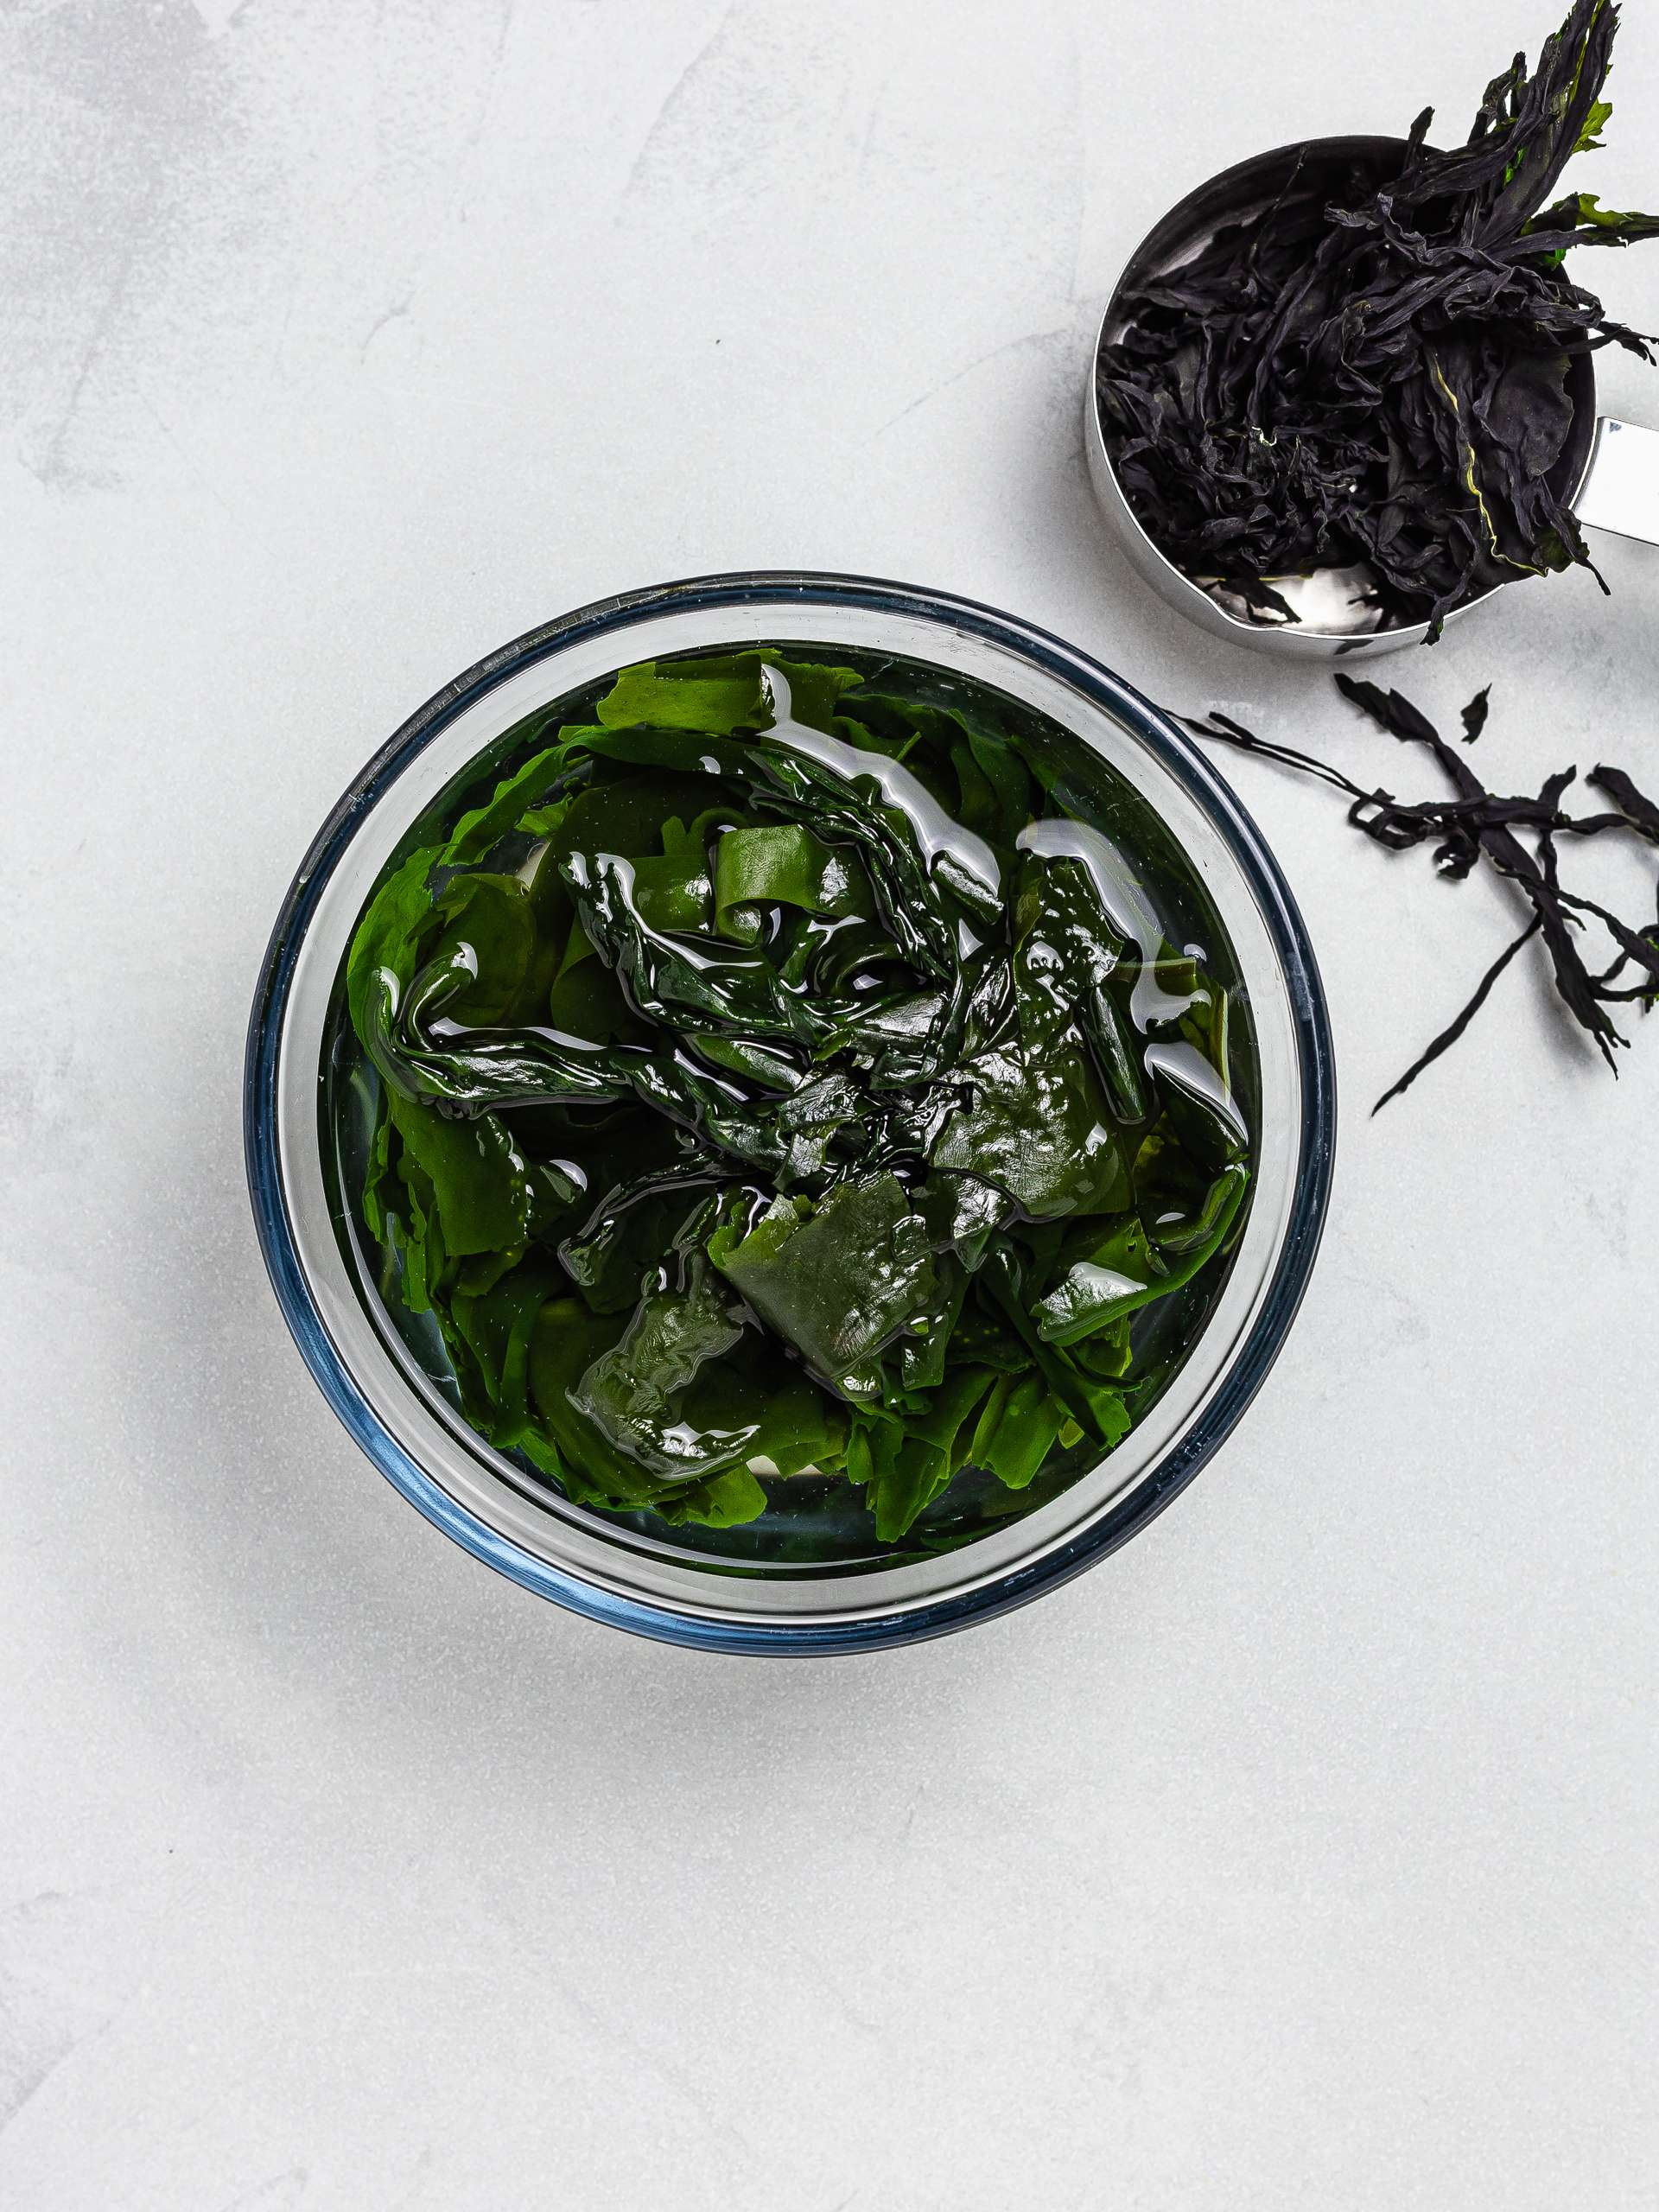 wakame seaweed soaked in water